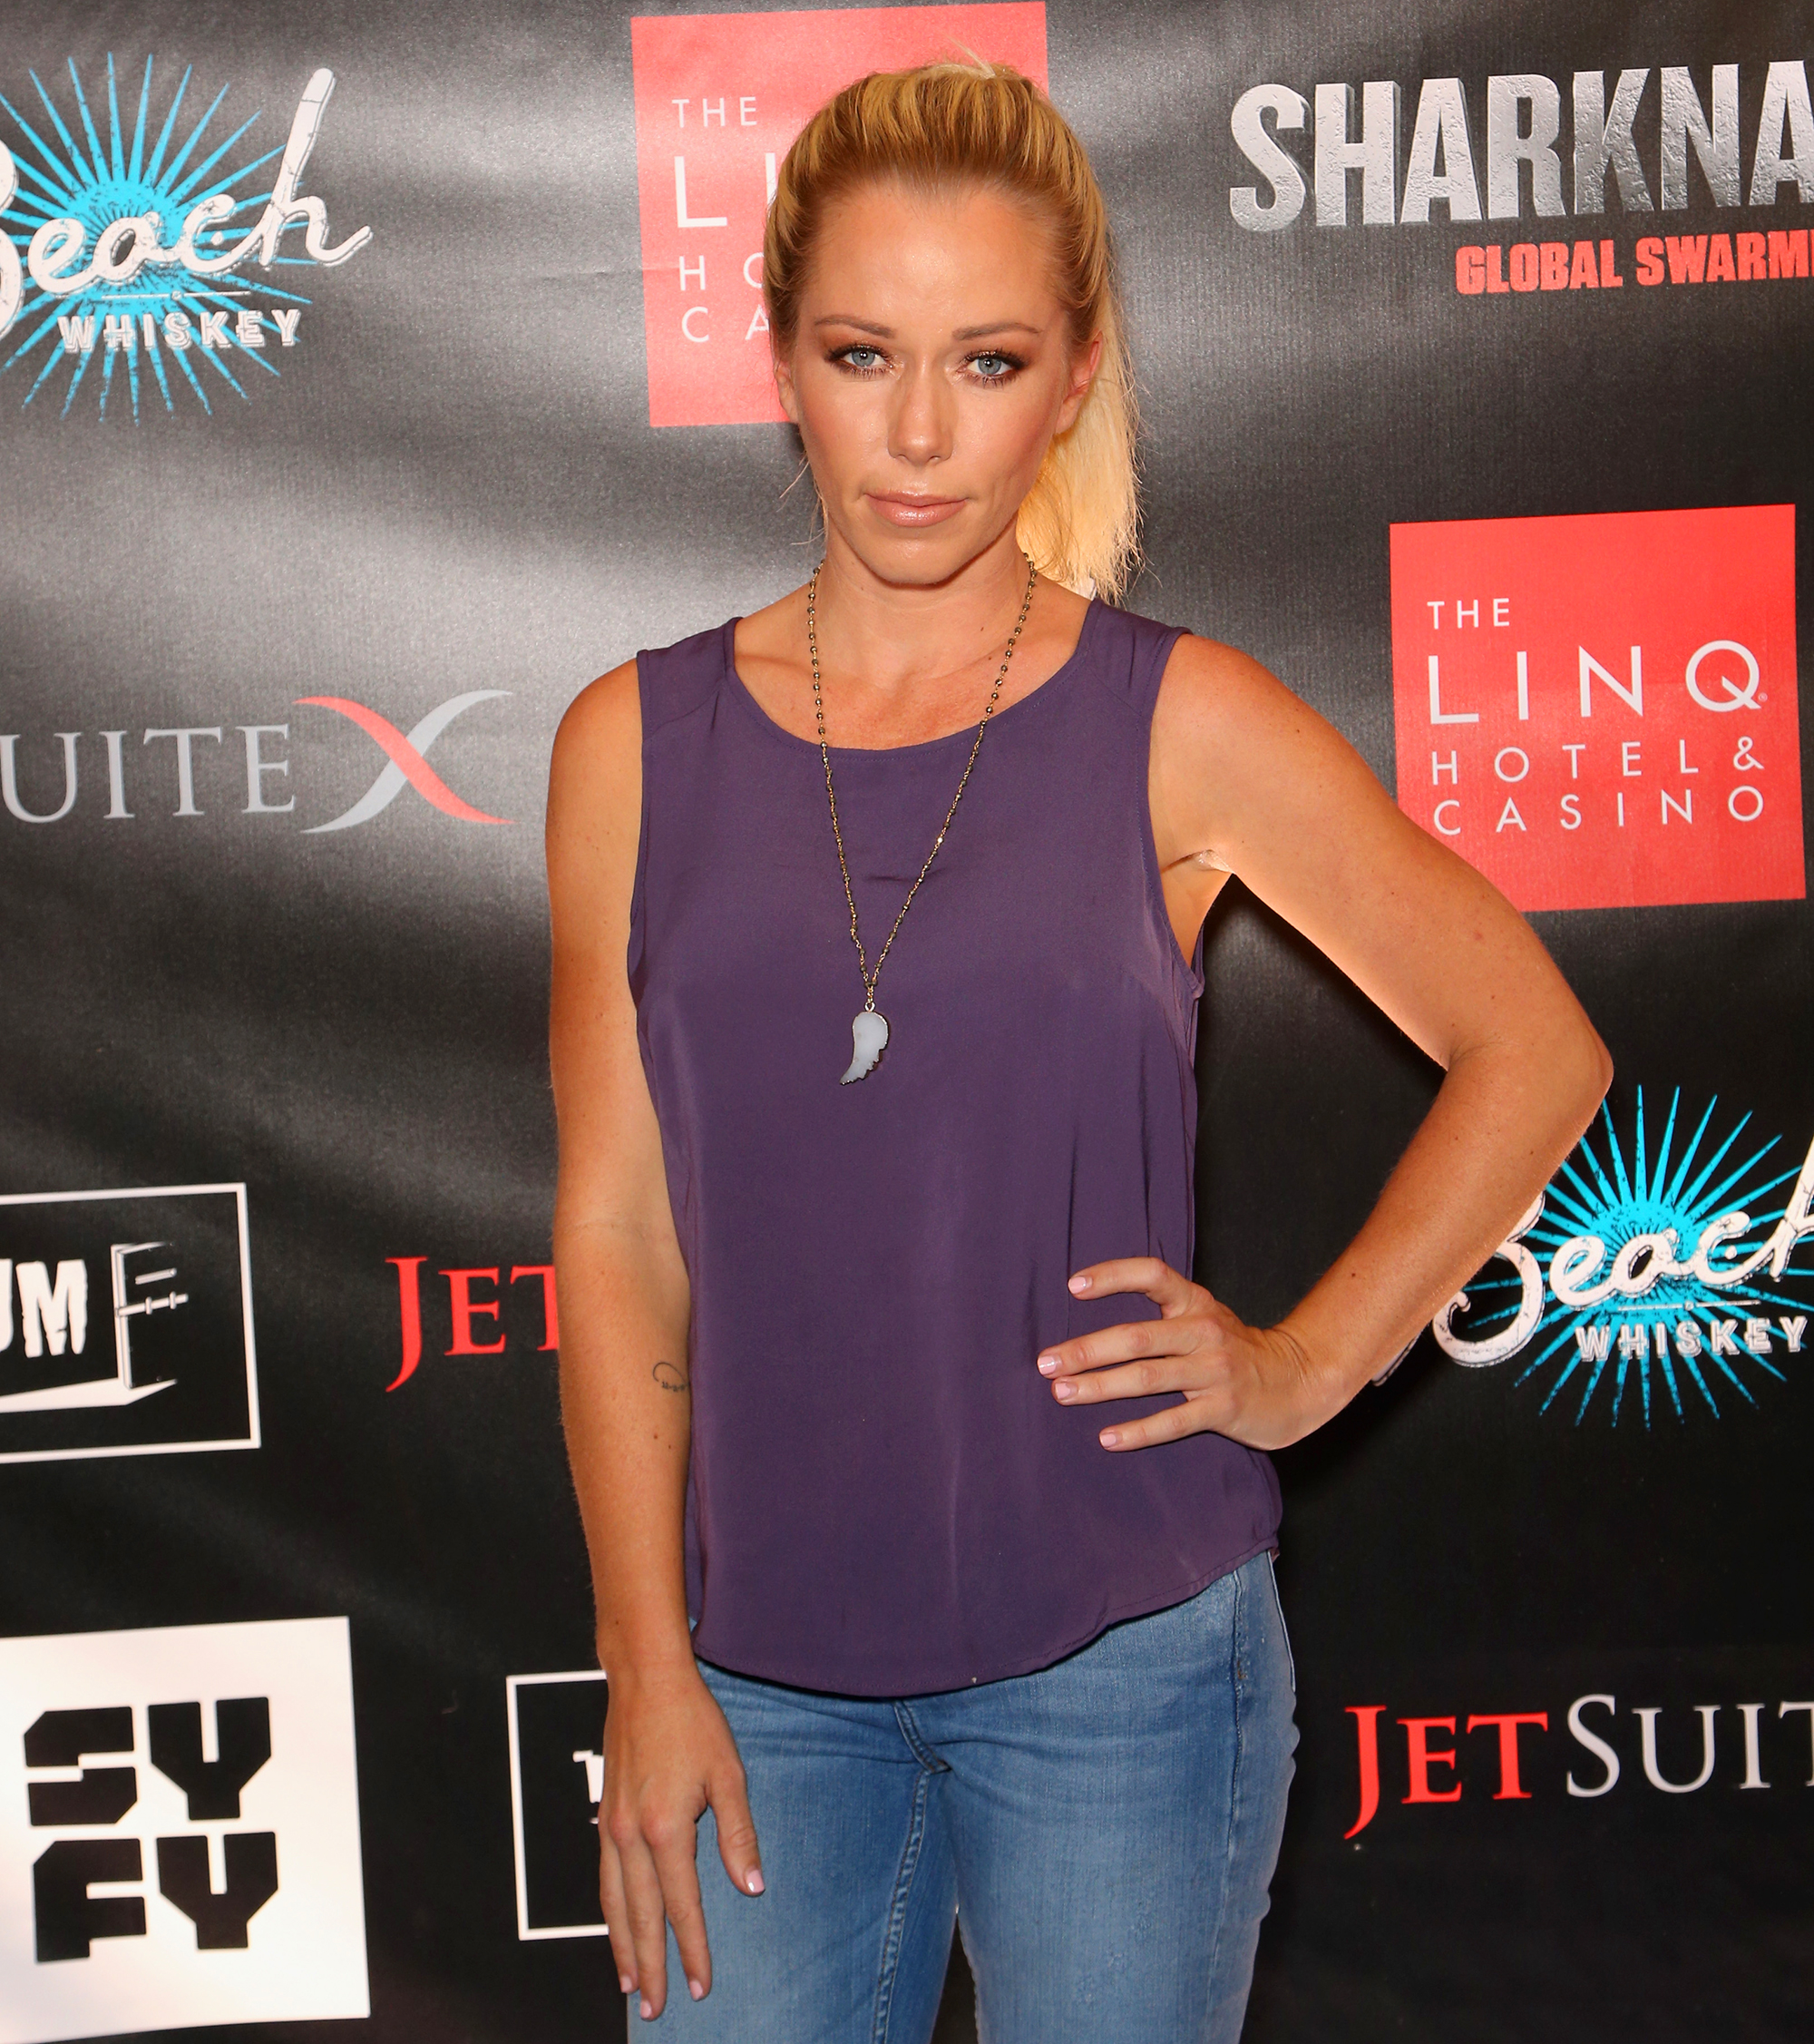 Kendra Wilkinson Files For Divorce From Hank Baskett, Reports 'E!'